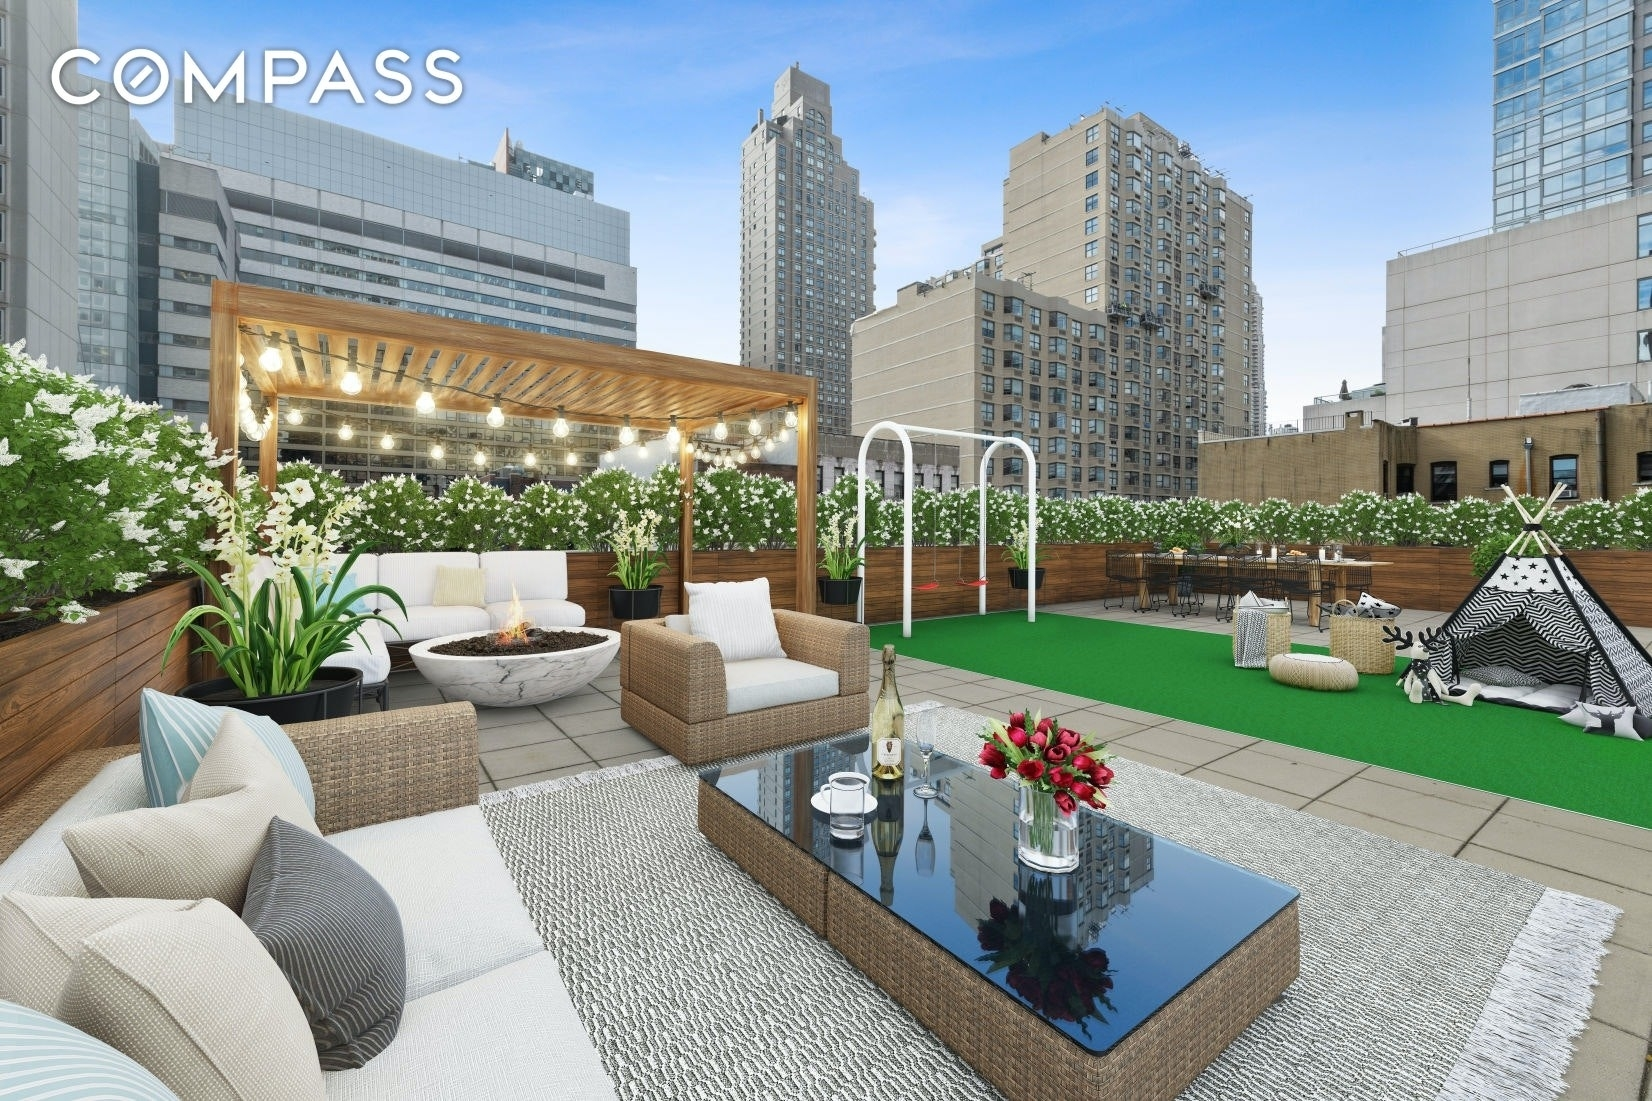 Property в OXFORD CONDO, 422 East 72nd St, 4D Lenox Hill, New York, NY 10021